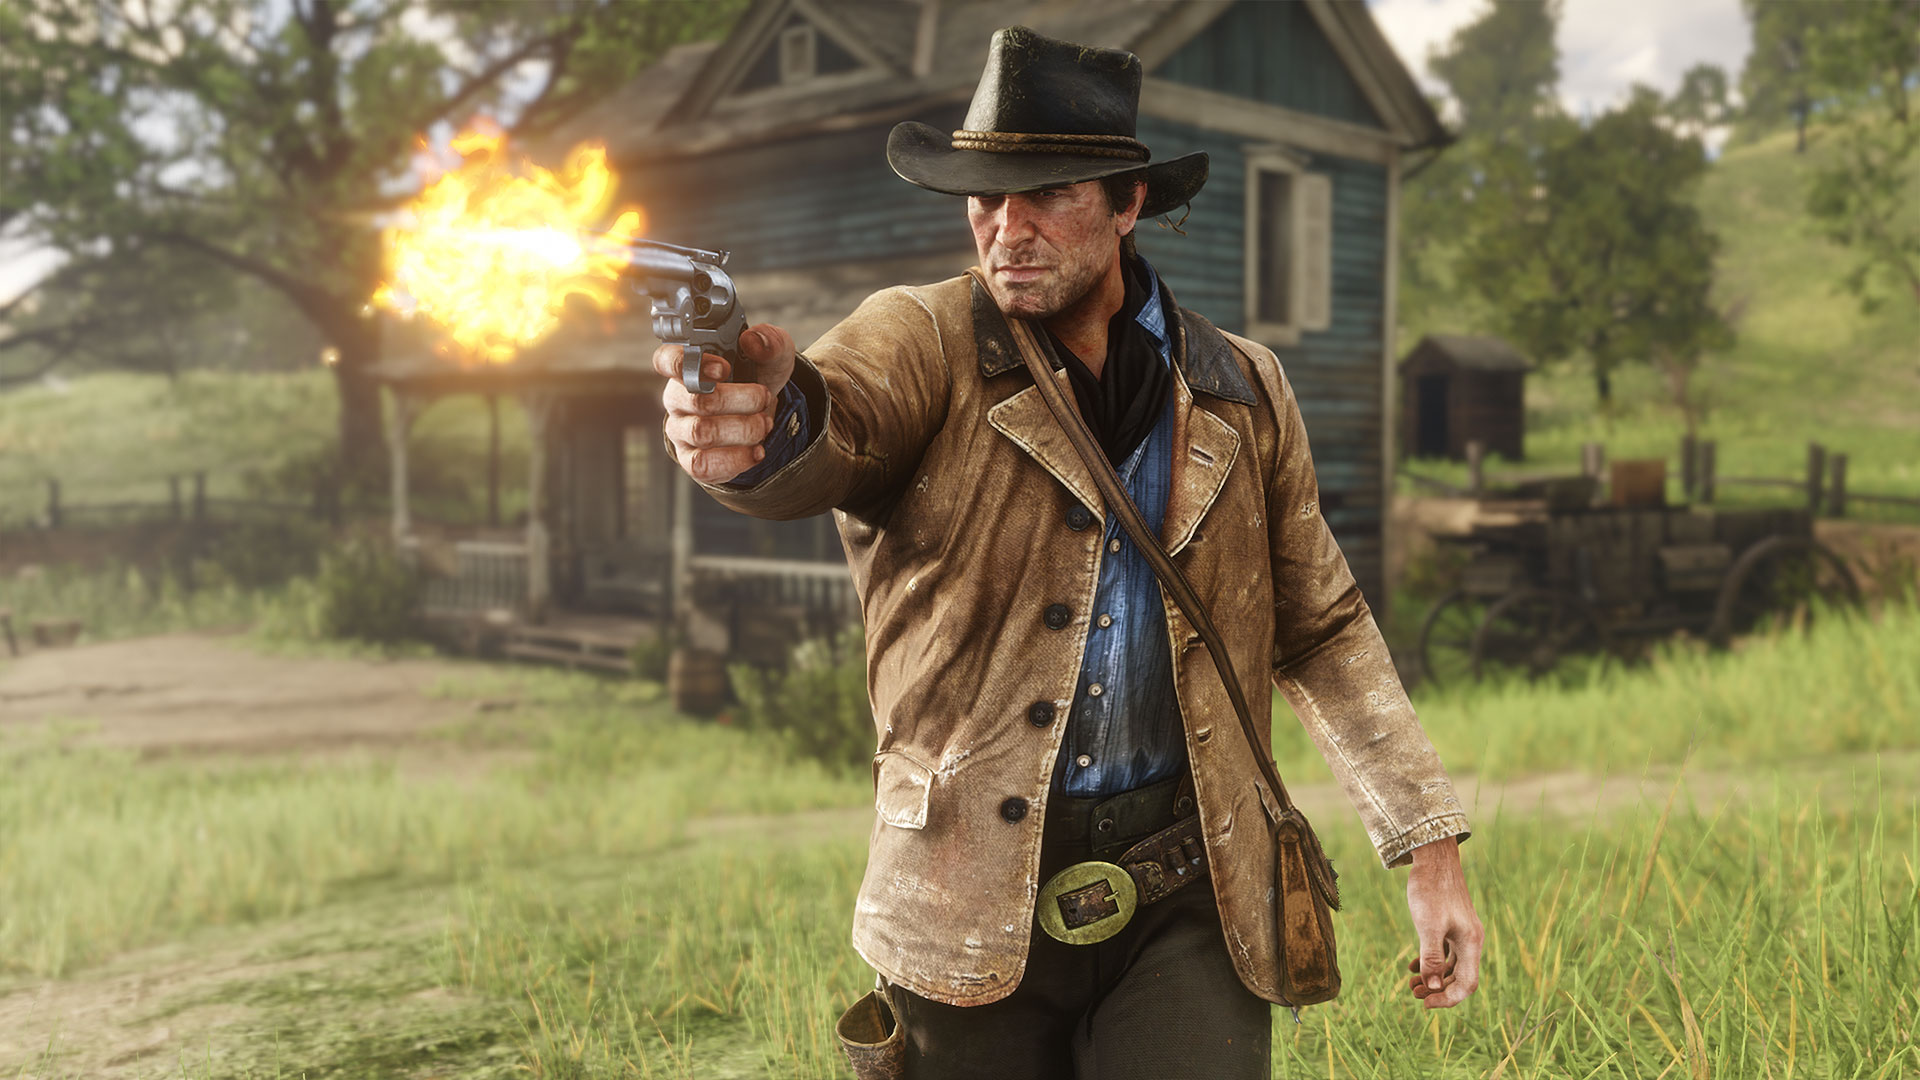 Red Dead Redemption 2 Sharpshooter Challenges Guide: How to